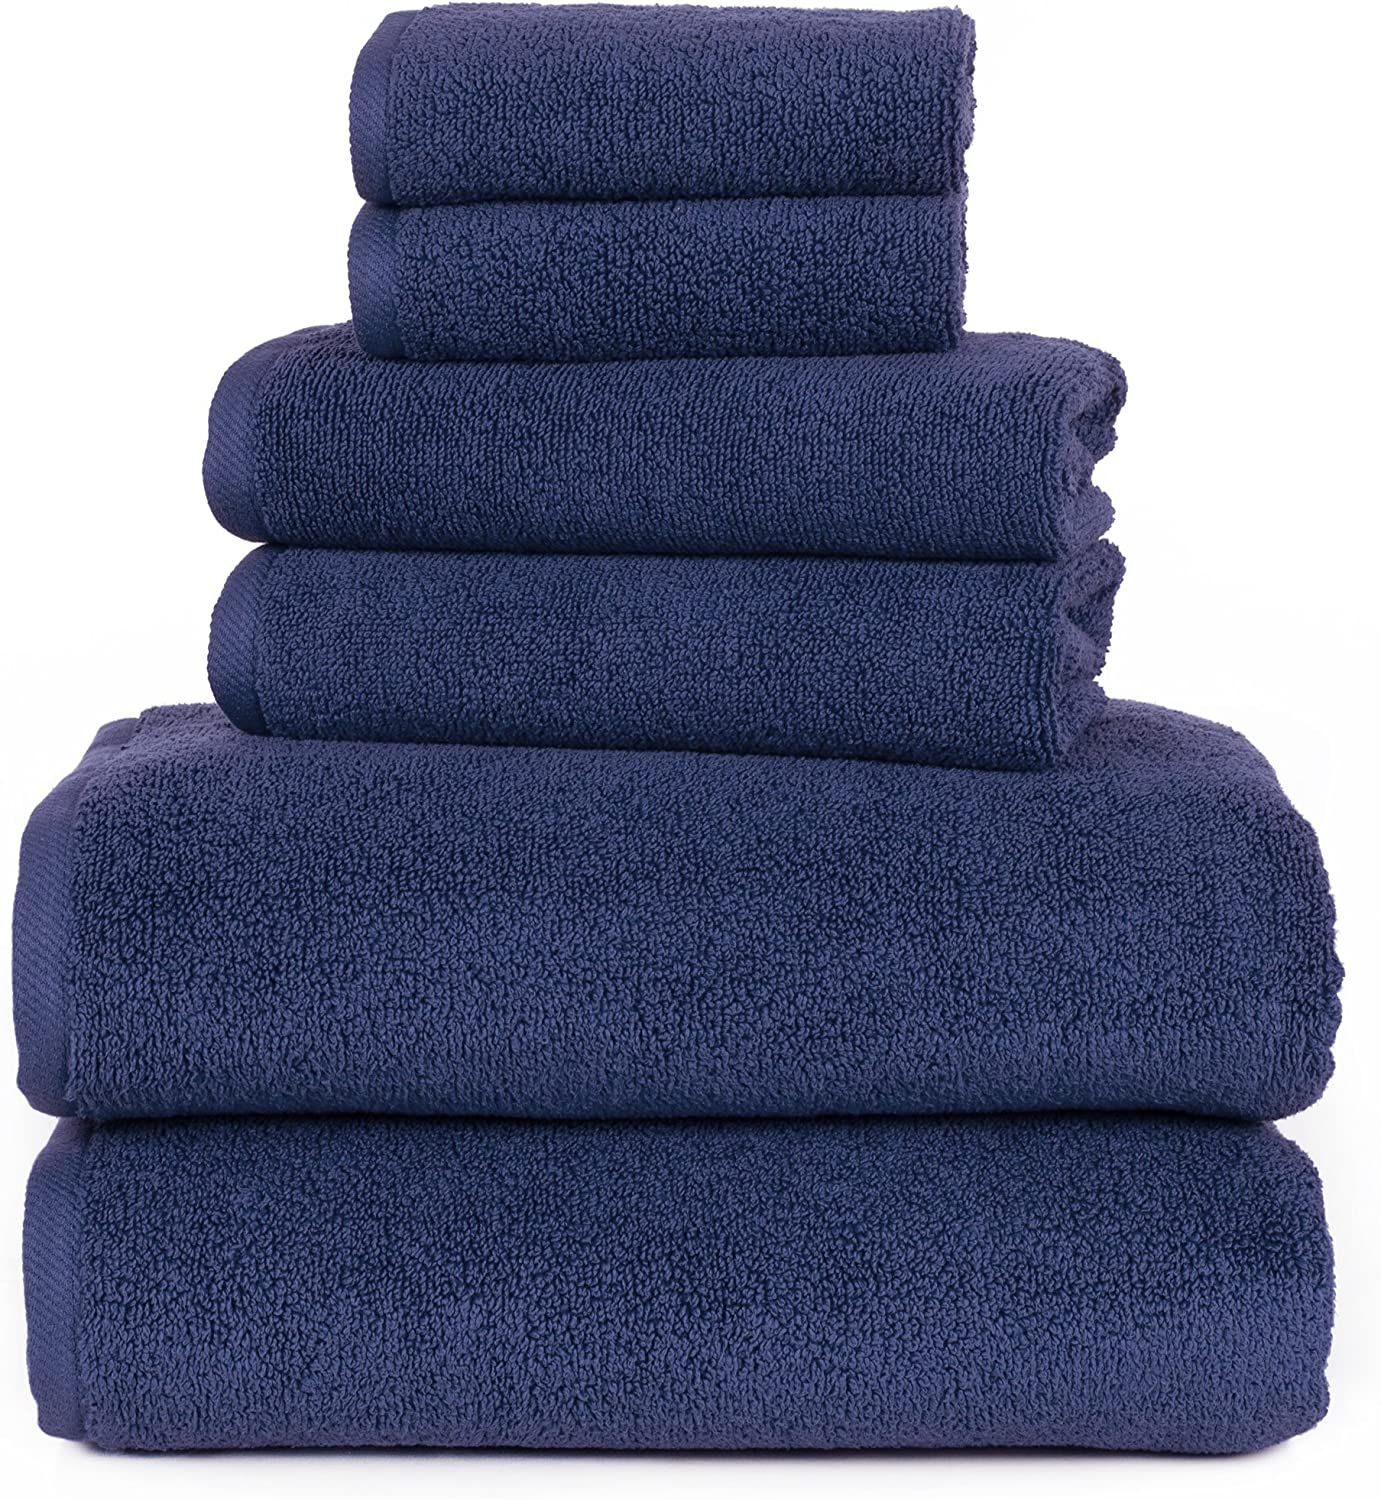 100 Percent Cotton Towel Set, Zero Twist, Soft and Absorbent 6 Piece Set With 2 Bath Towels, 2 Hand Towels and 2 Washcloths (Navy) By Lavish Home